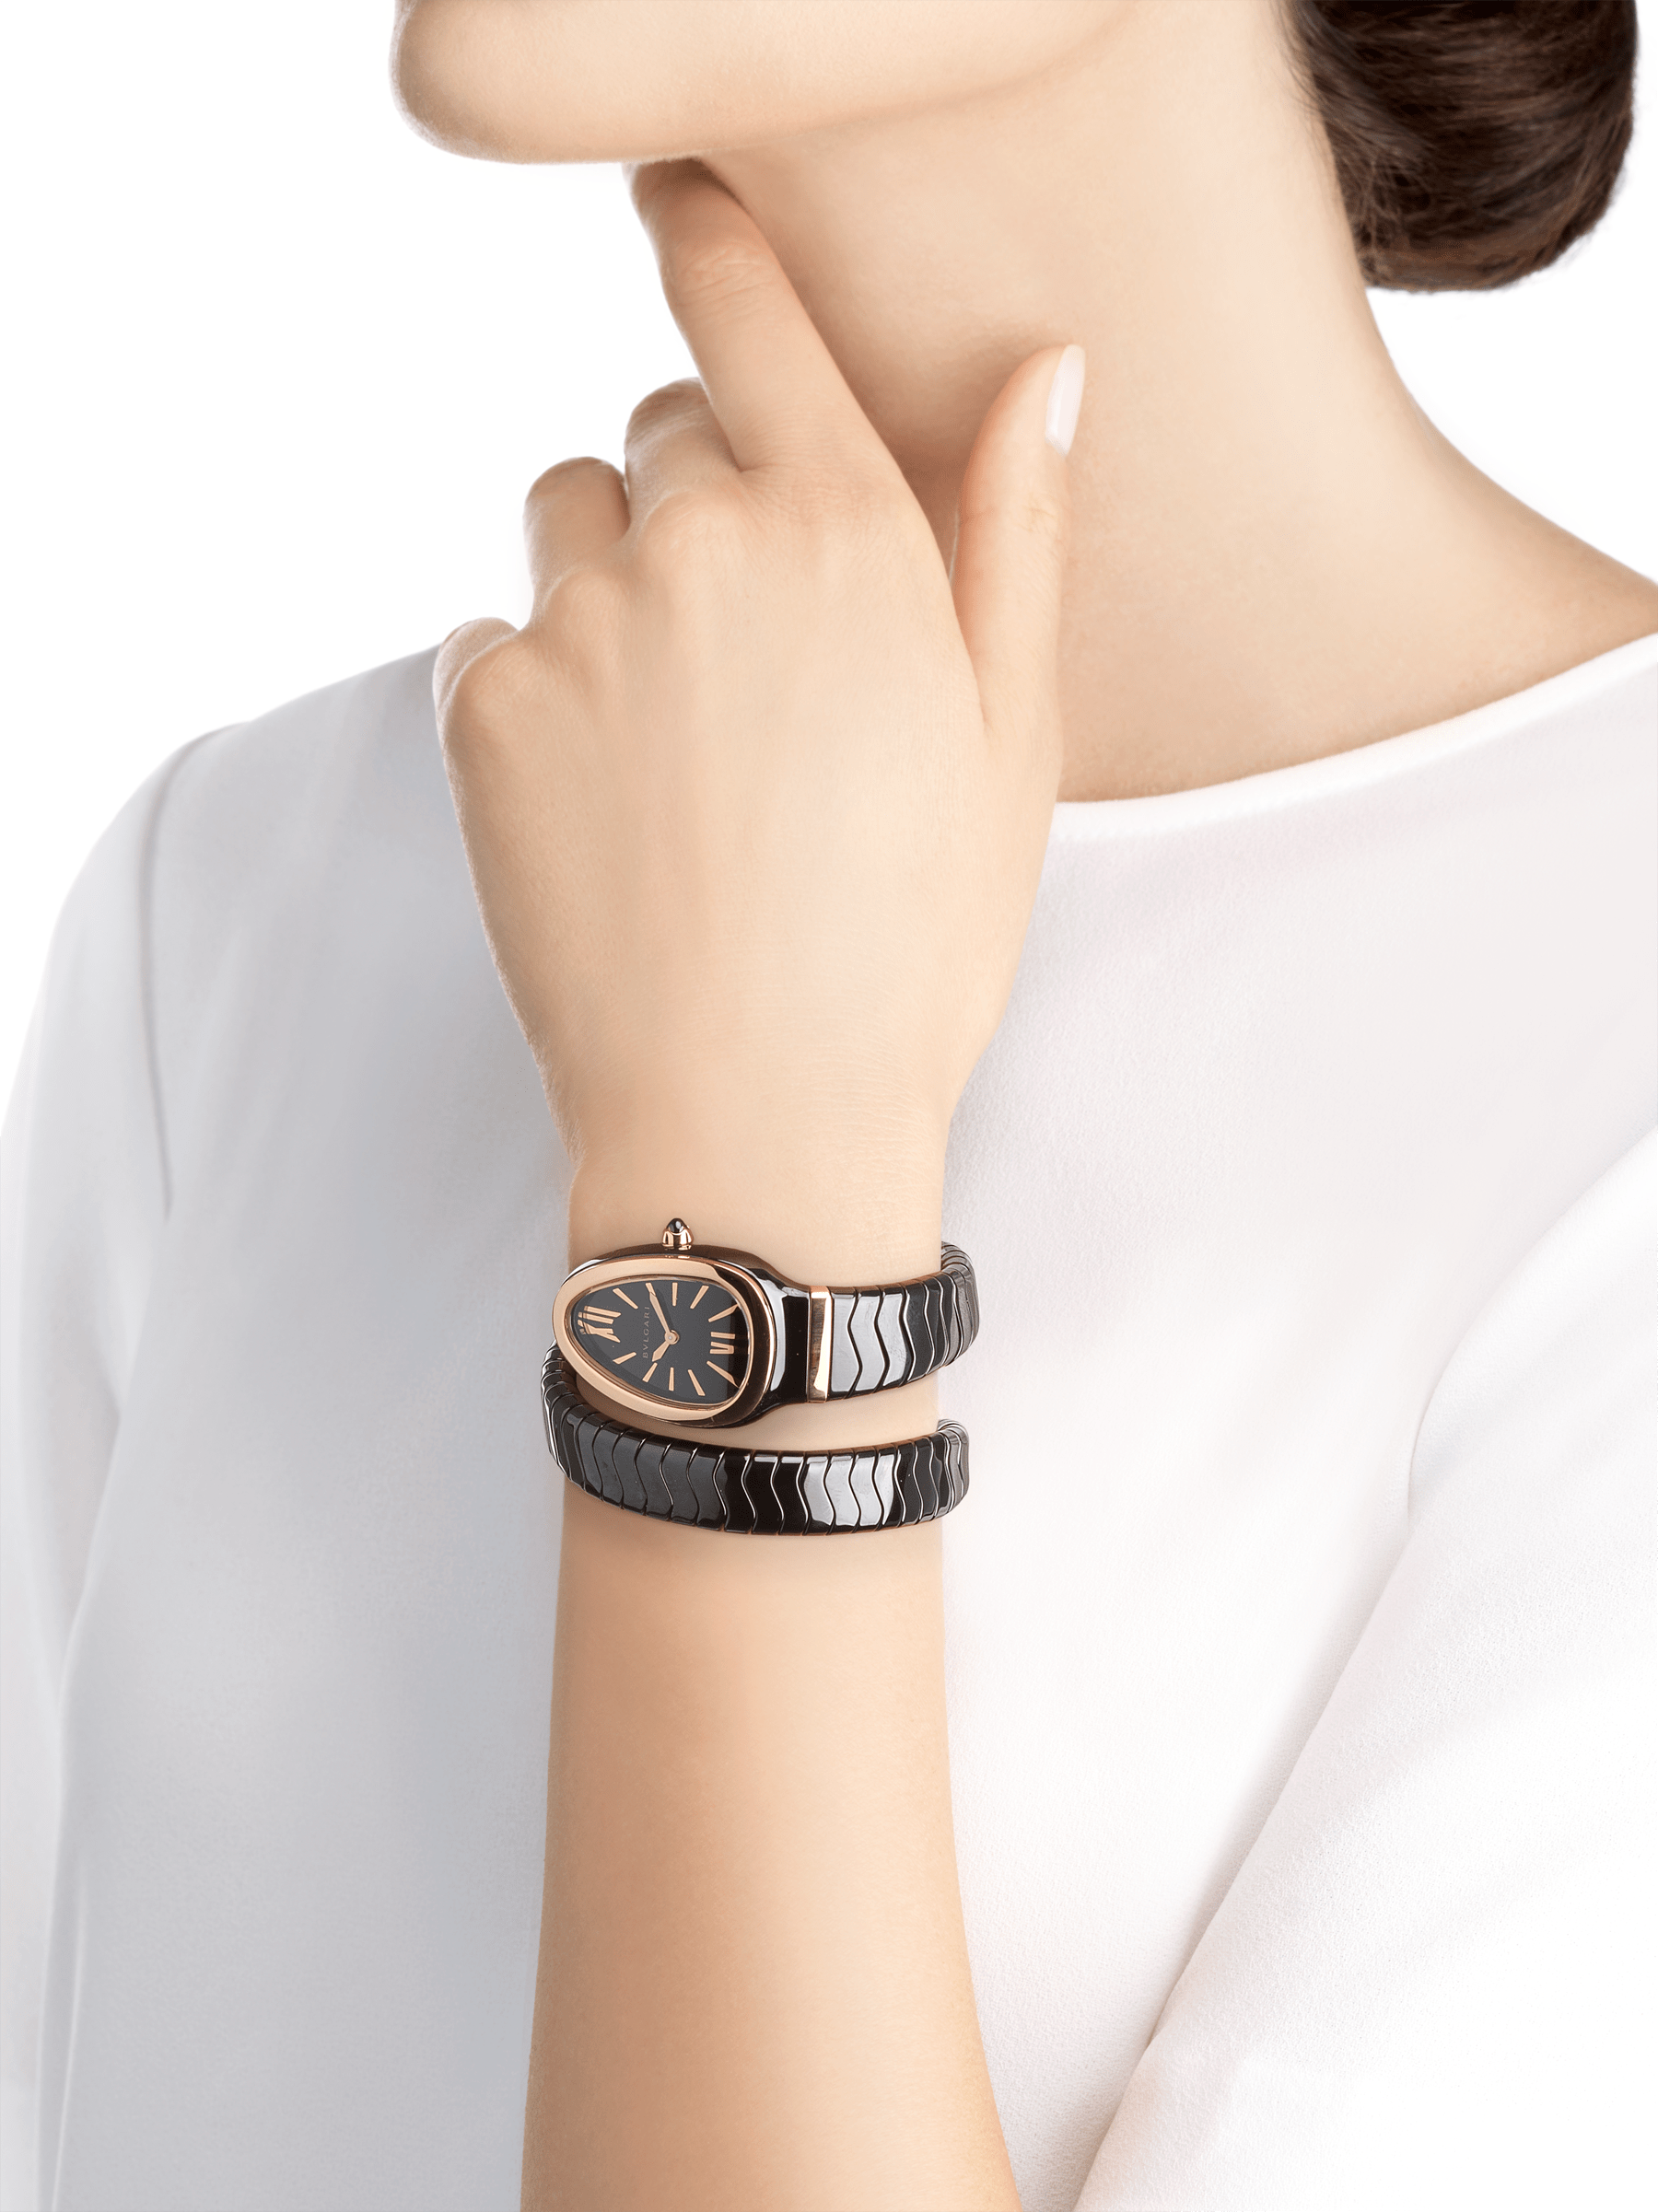 Serpenti Spiga single spiral watch with black ceramic case, 18 kt rose gold bezel, black lacquered dial and black ceramic bracelet set with 18 kt rose gold elements. 102735 image 4